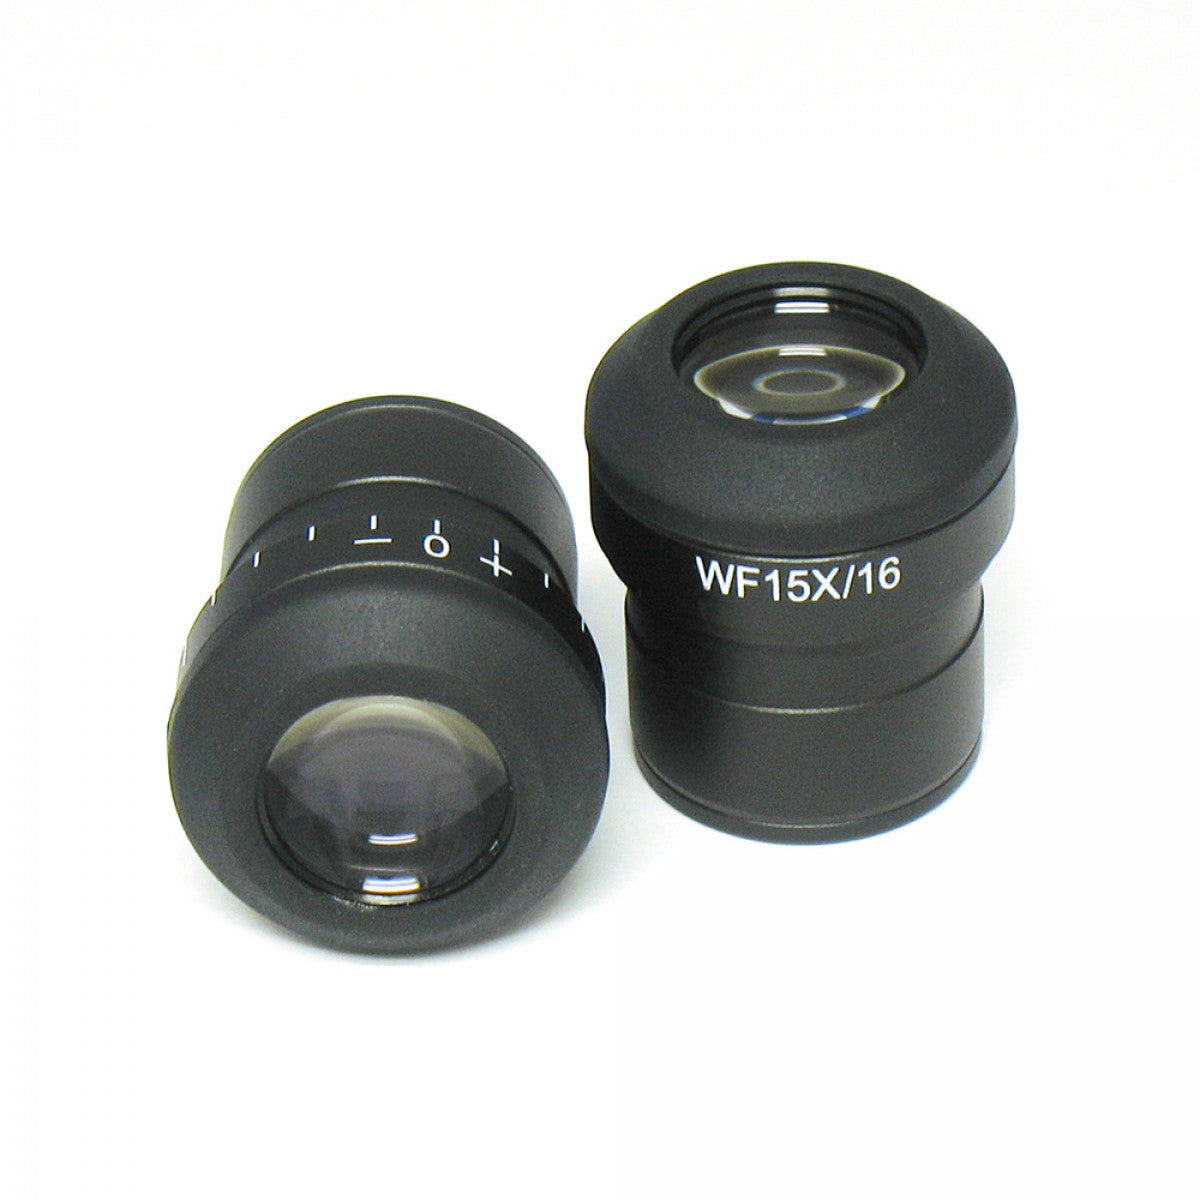 Eyepieces for Unitron Z850 Microscope Series